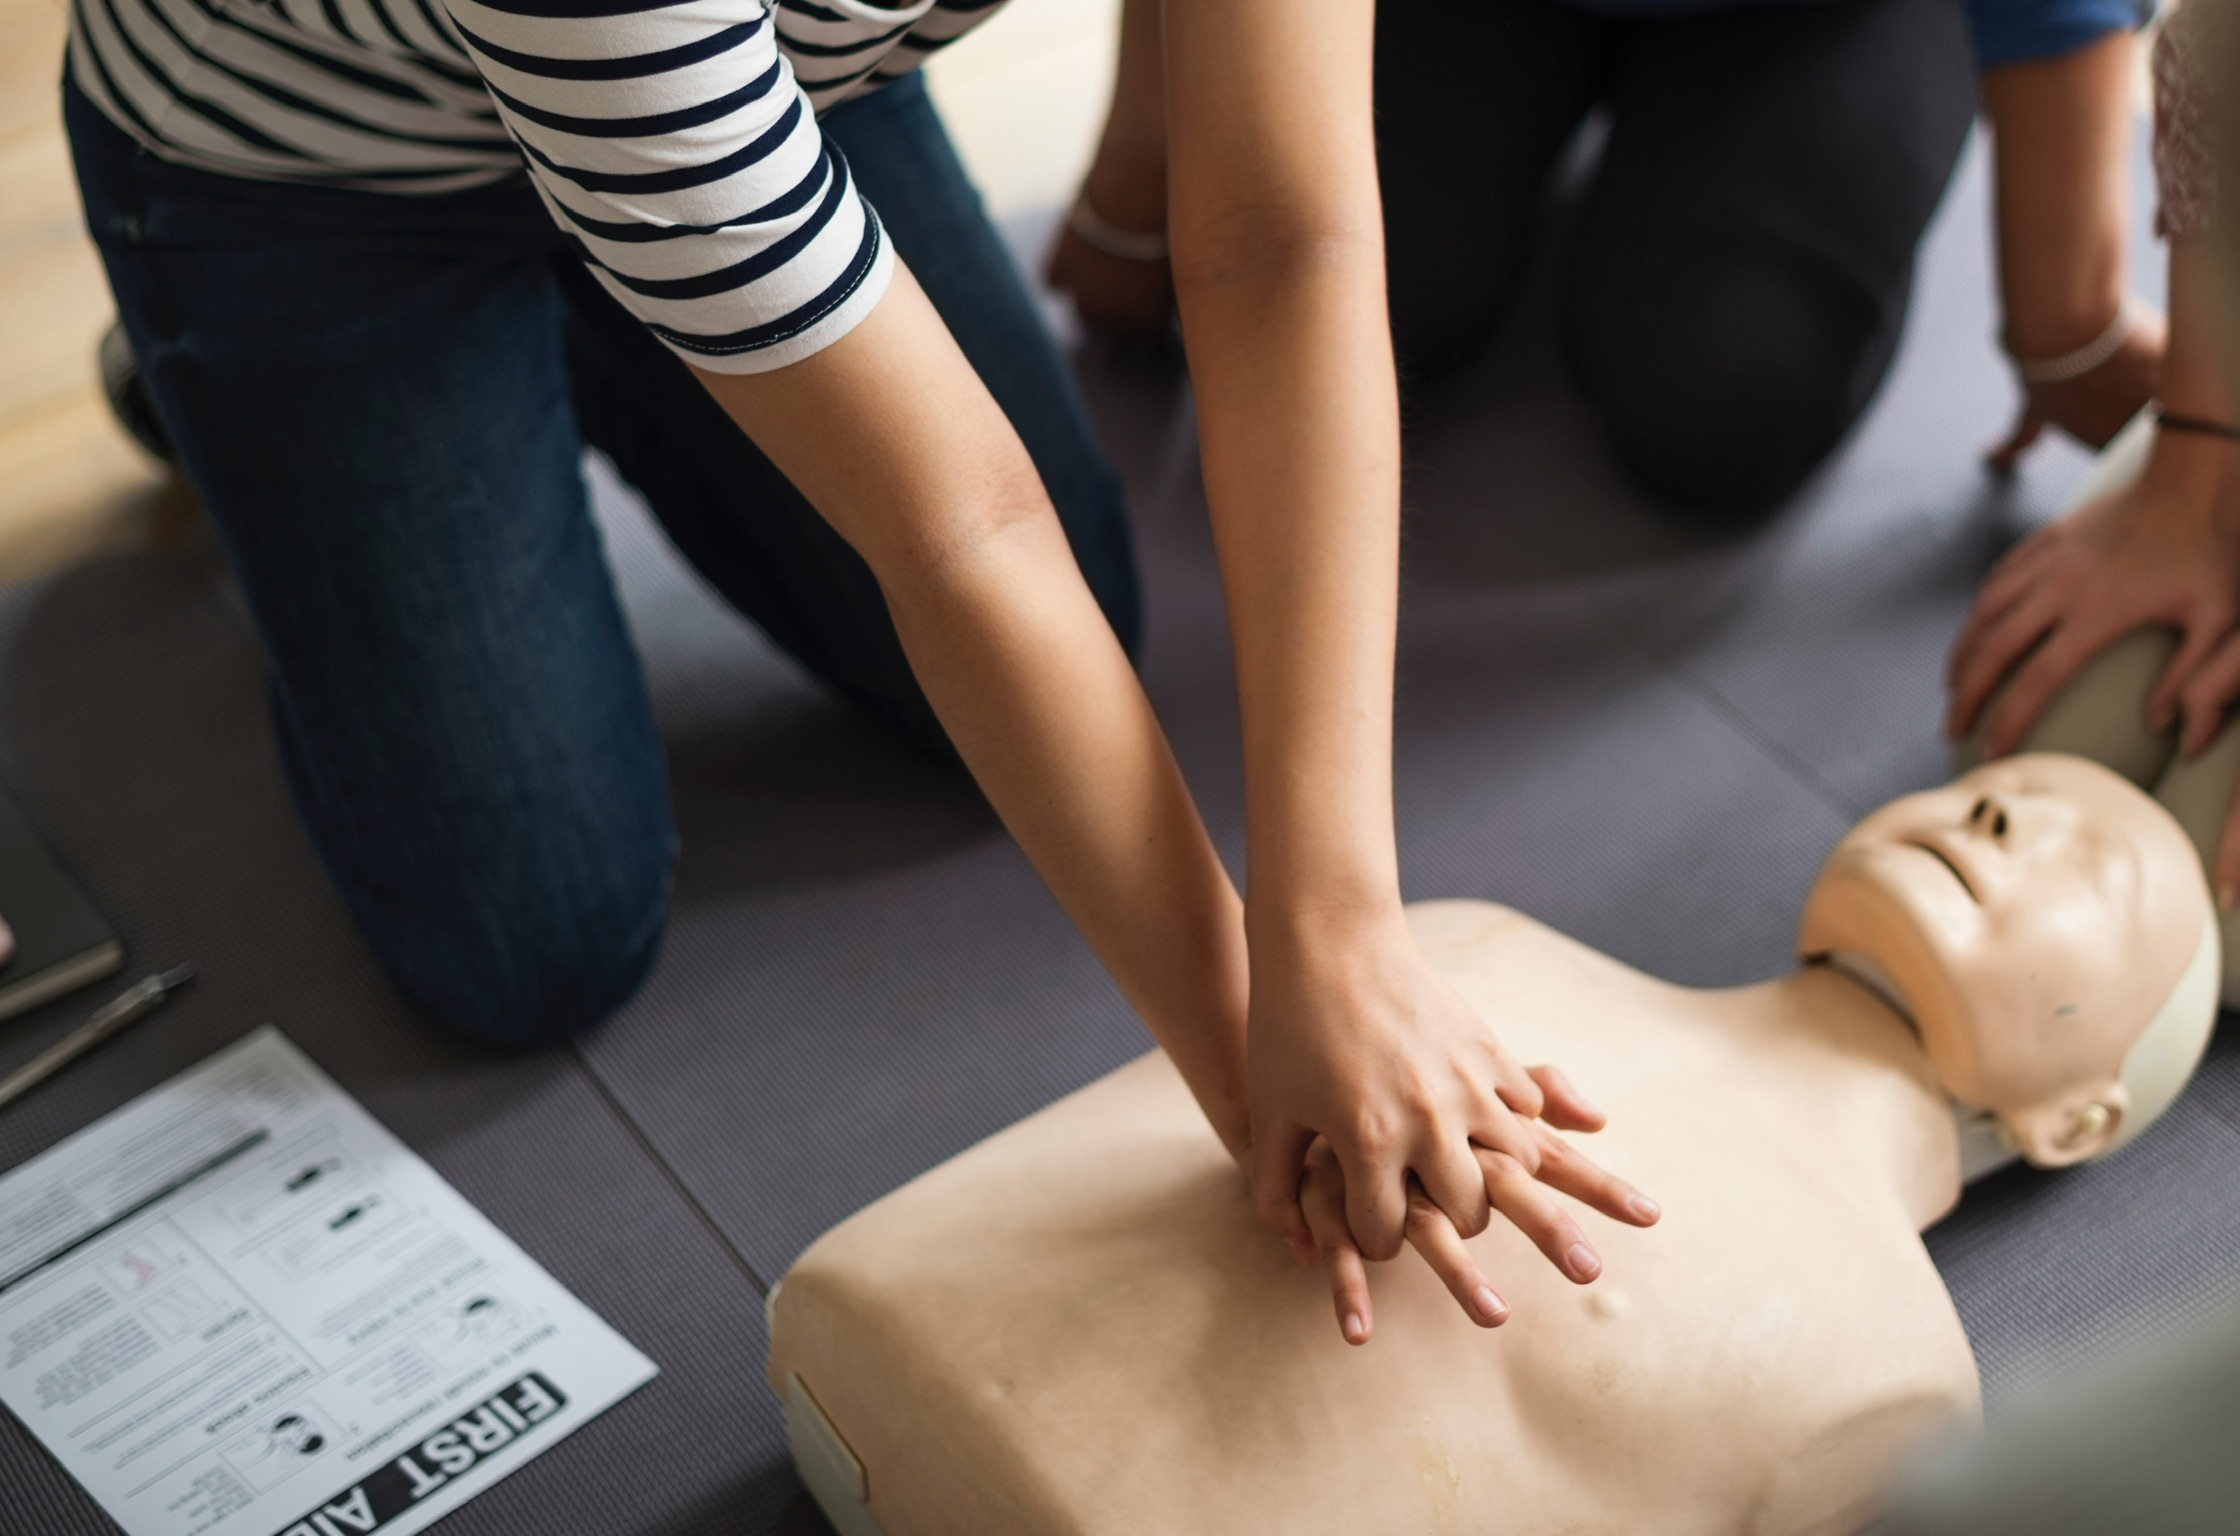 cpr-basic-life-support-first-responder-training.jpg